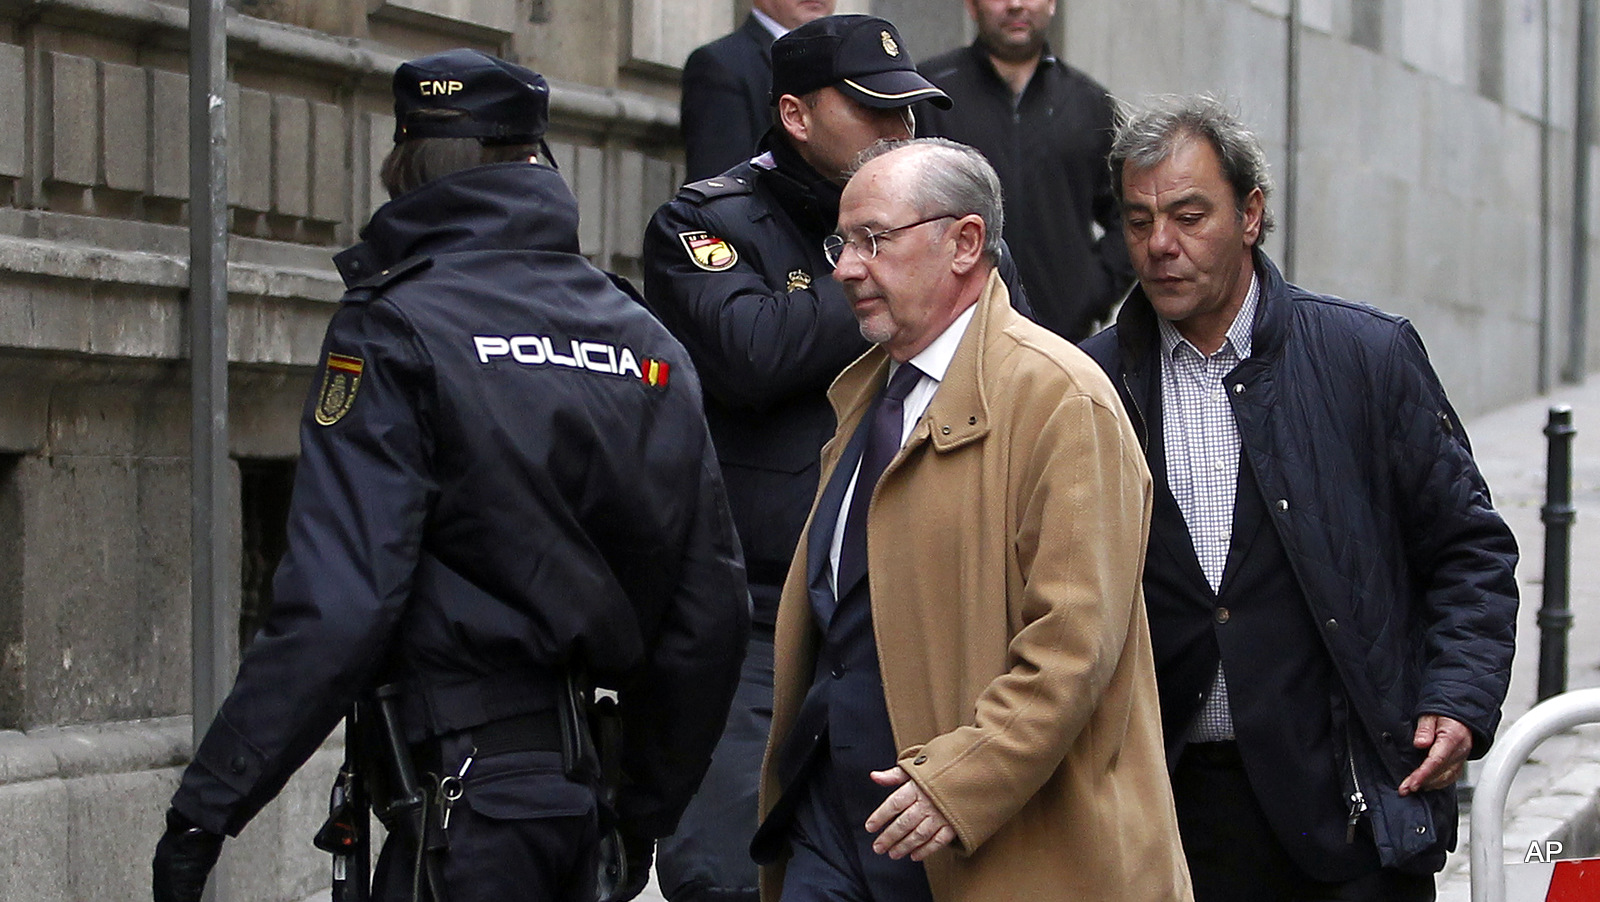 Former IMF Chief Under Investigation For Money Laundering, Now Arrested